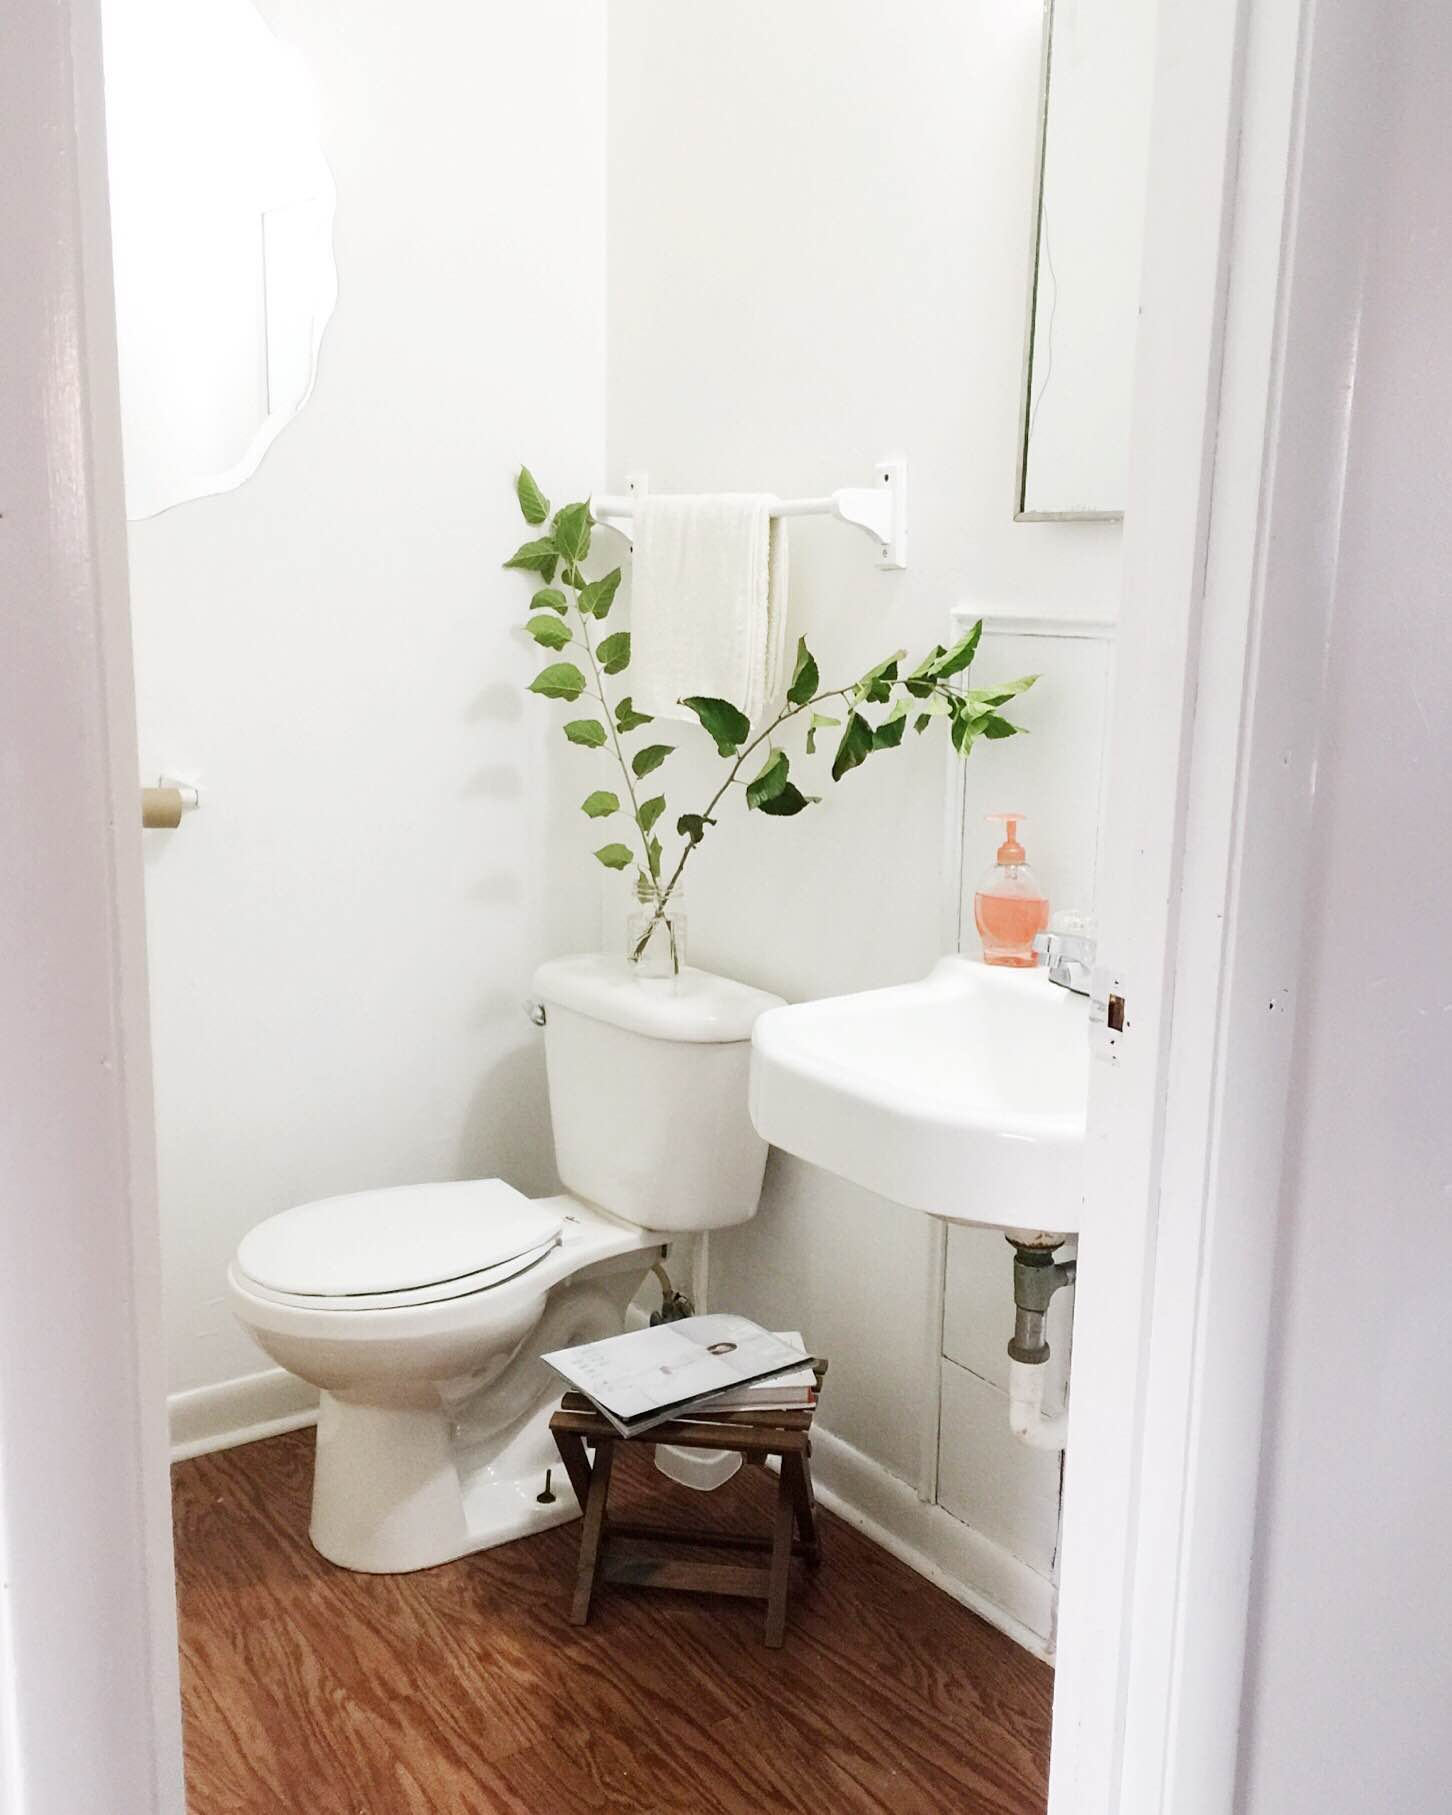 Also, bathrooms don't have to be perfect. Just paint them white and leave them alone.